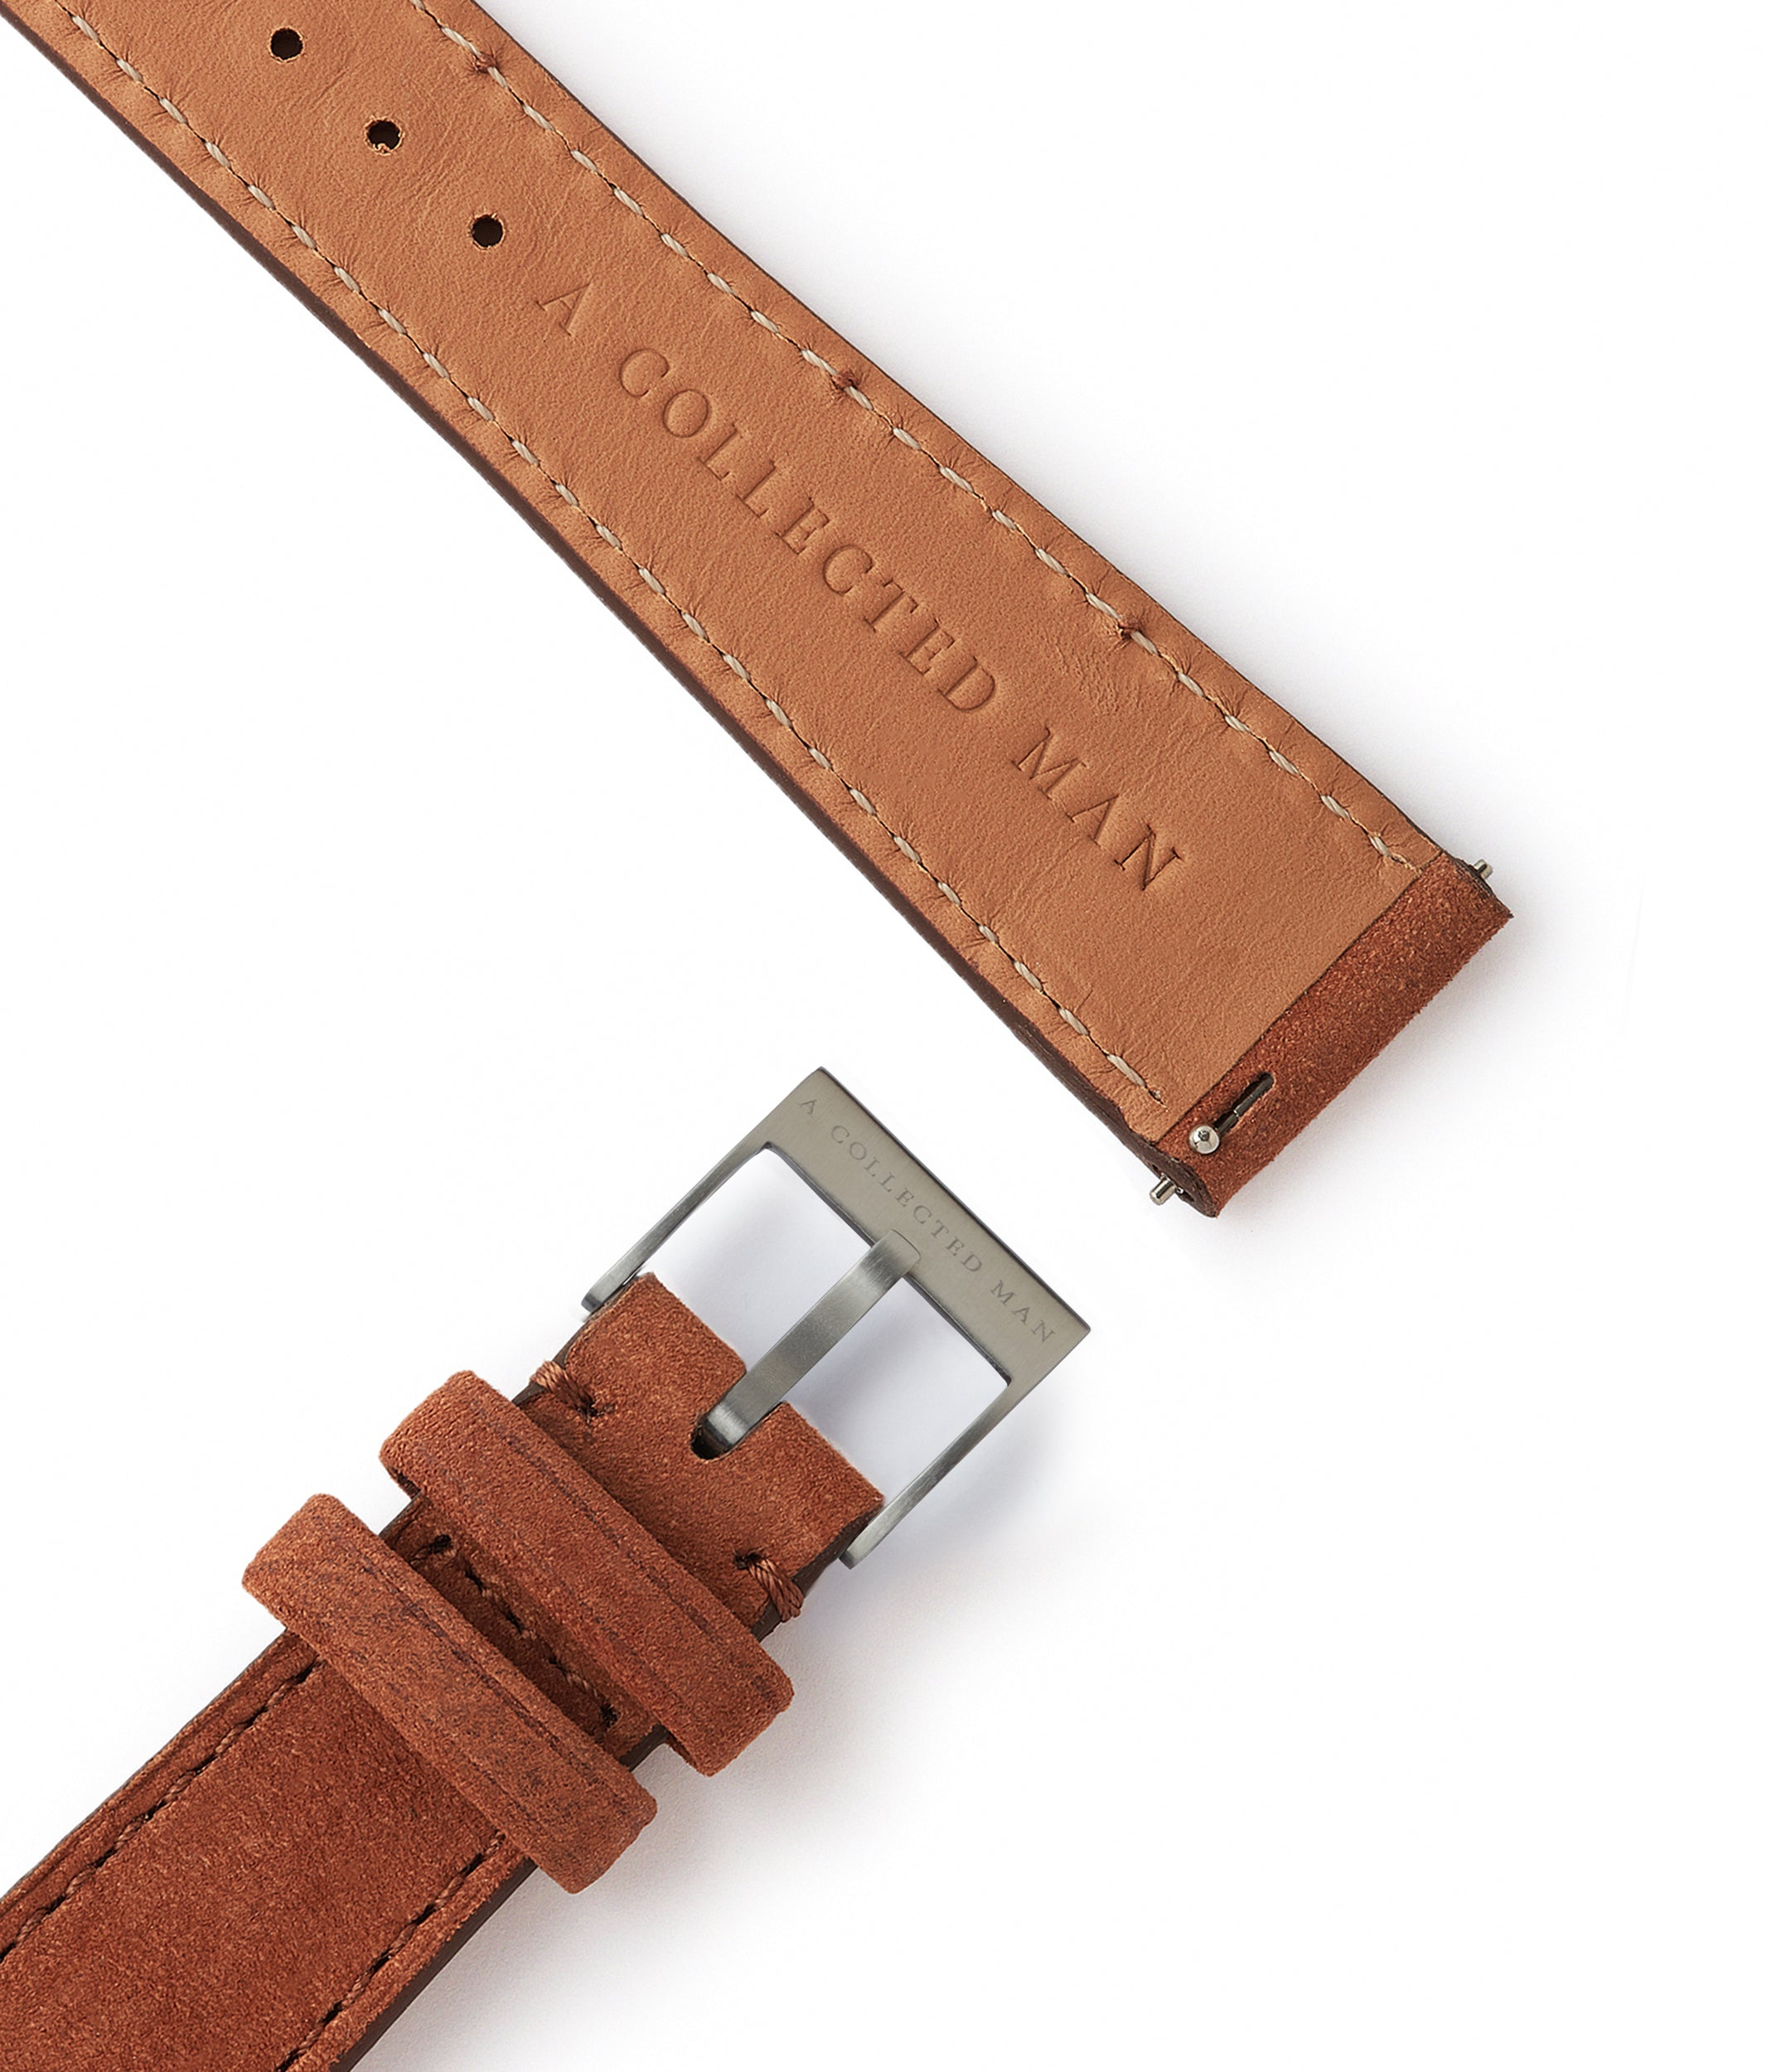 rich brown leather nubuck watch strap quick-release springbars Bordeaux Molequin for sale order online at A Collected Man London